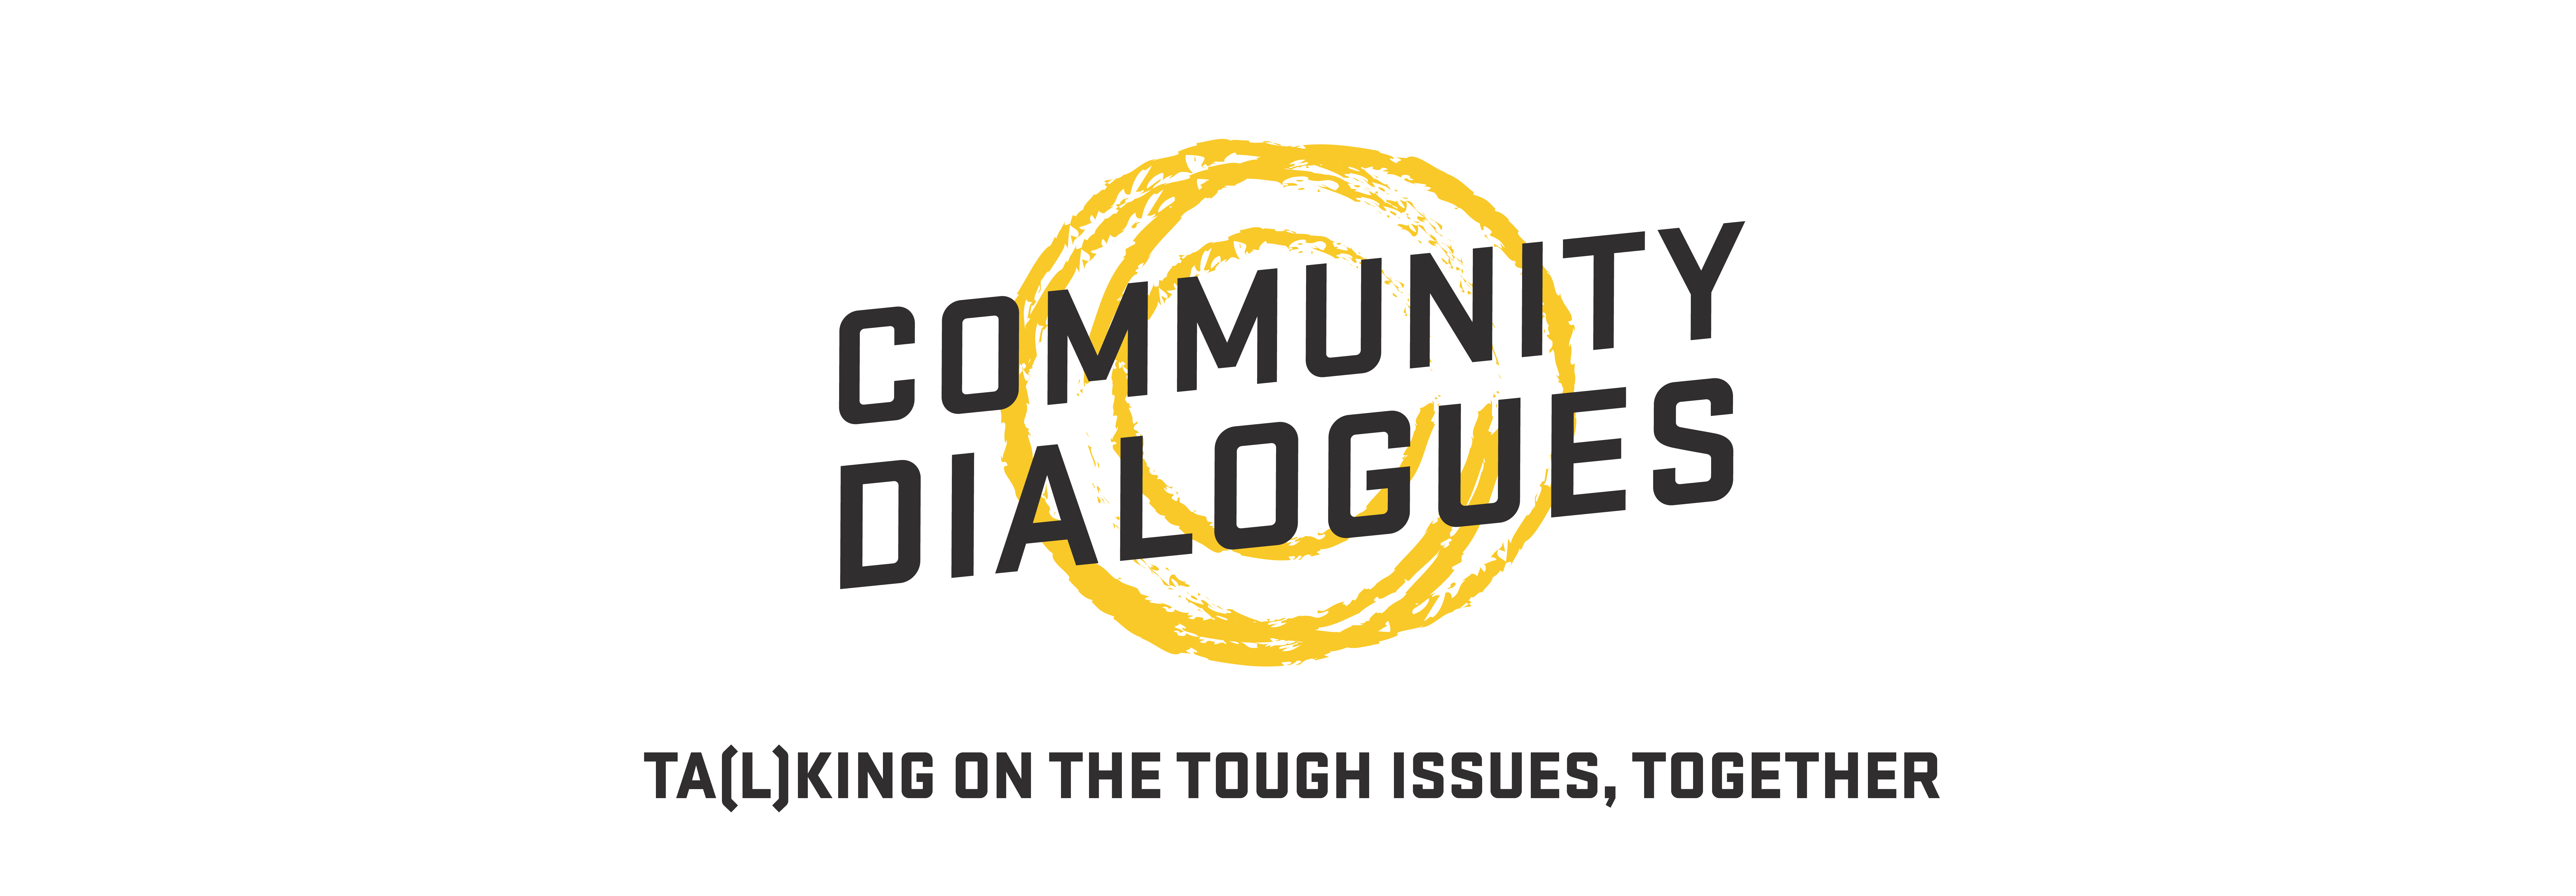 Community Dialogues